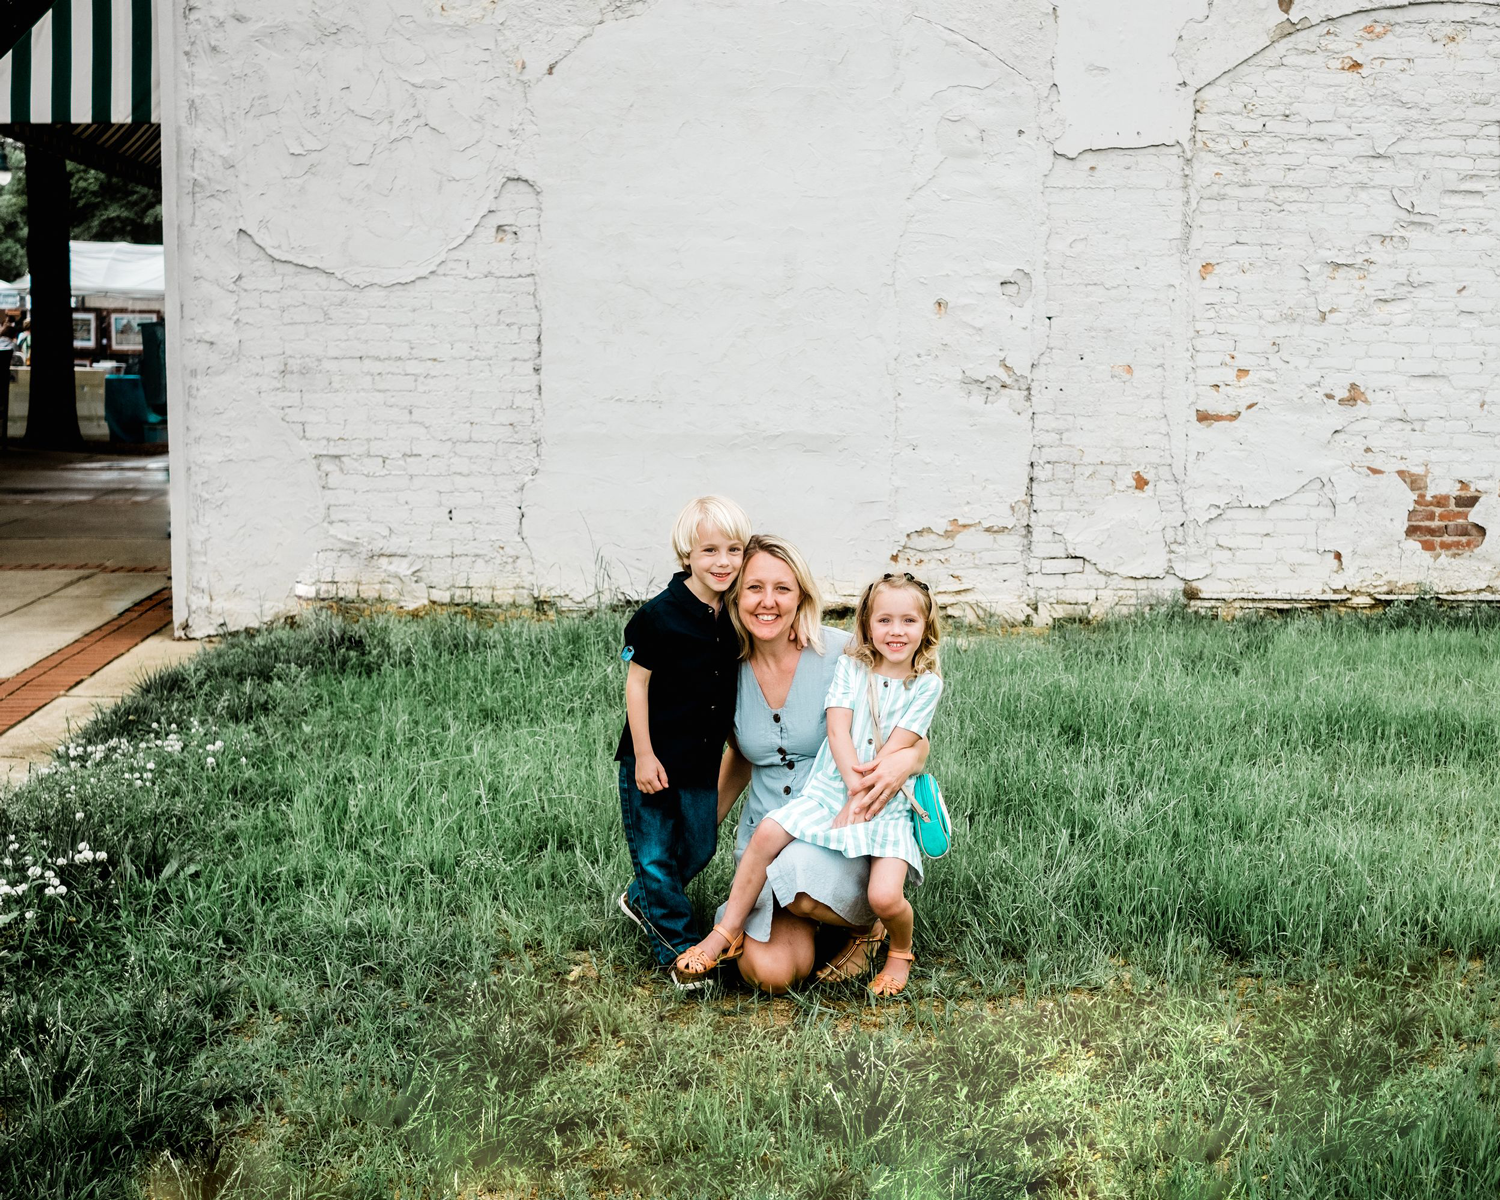 Meet Erin Dyer, Family Photographer in Greenville, South Carolina